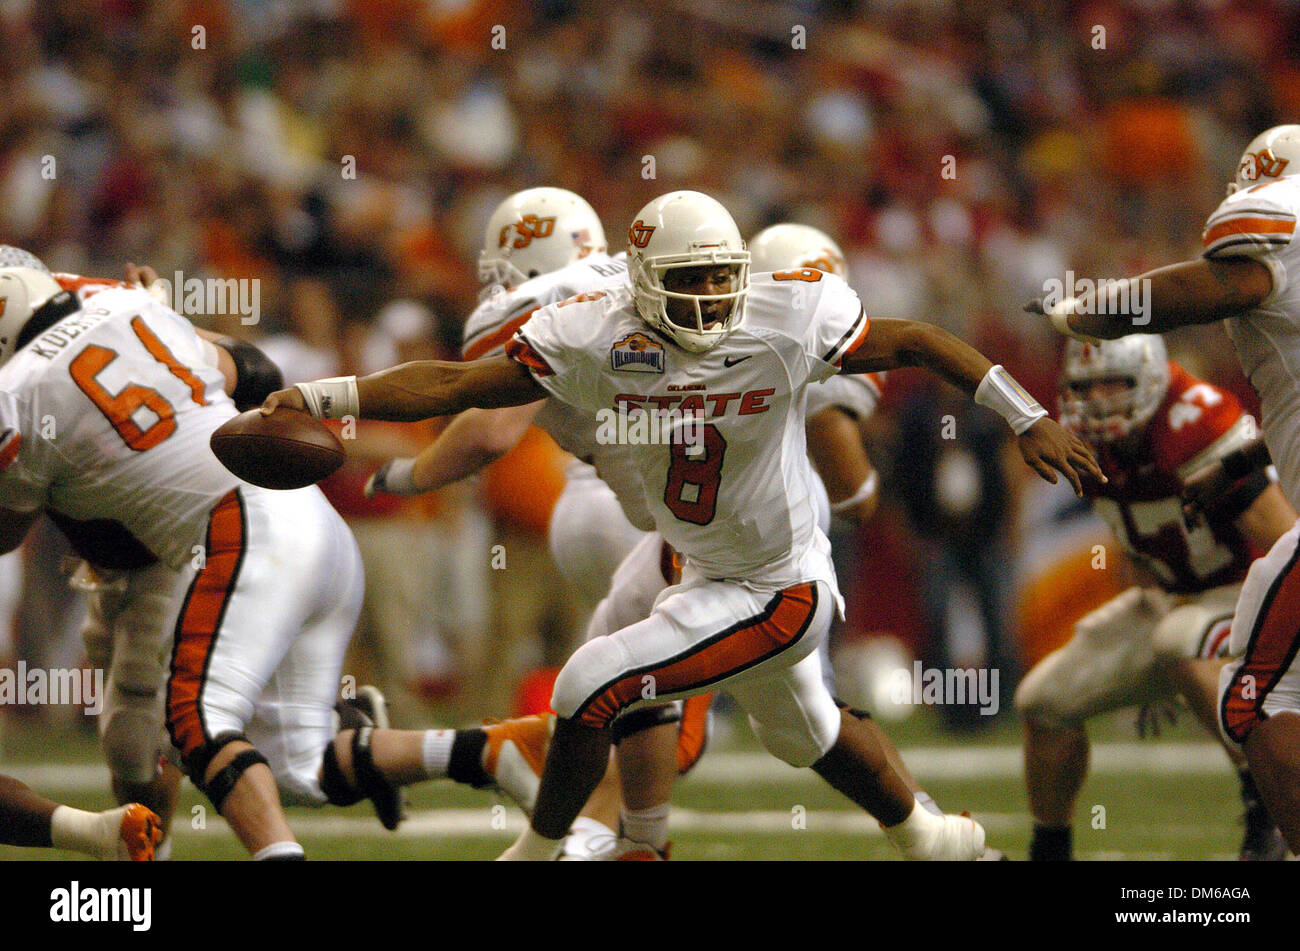 Dec 29, 2004; San Antonio, TX, USA; NCAA Football - Oklahoma States' QB Donovan Woods during the 2004 MasterCard Alamo Bowl at the Alamo dome in San Antonio. - Stock Image